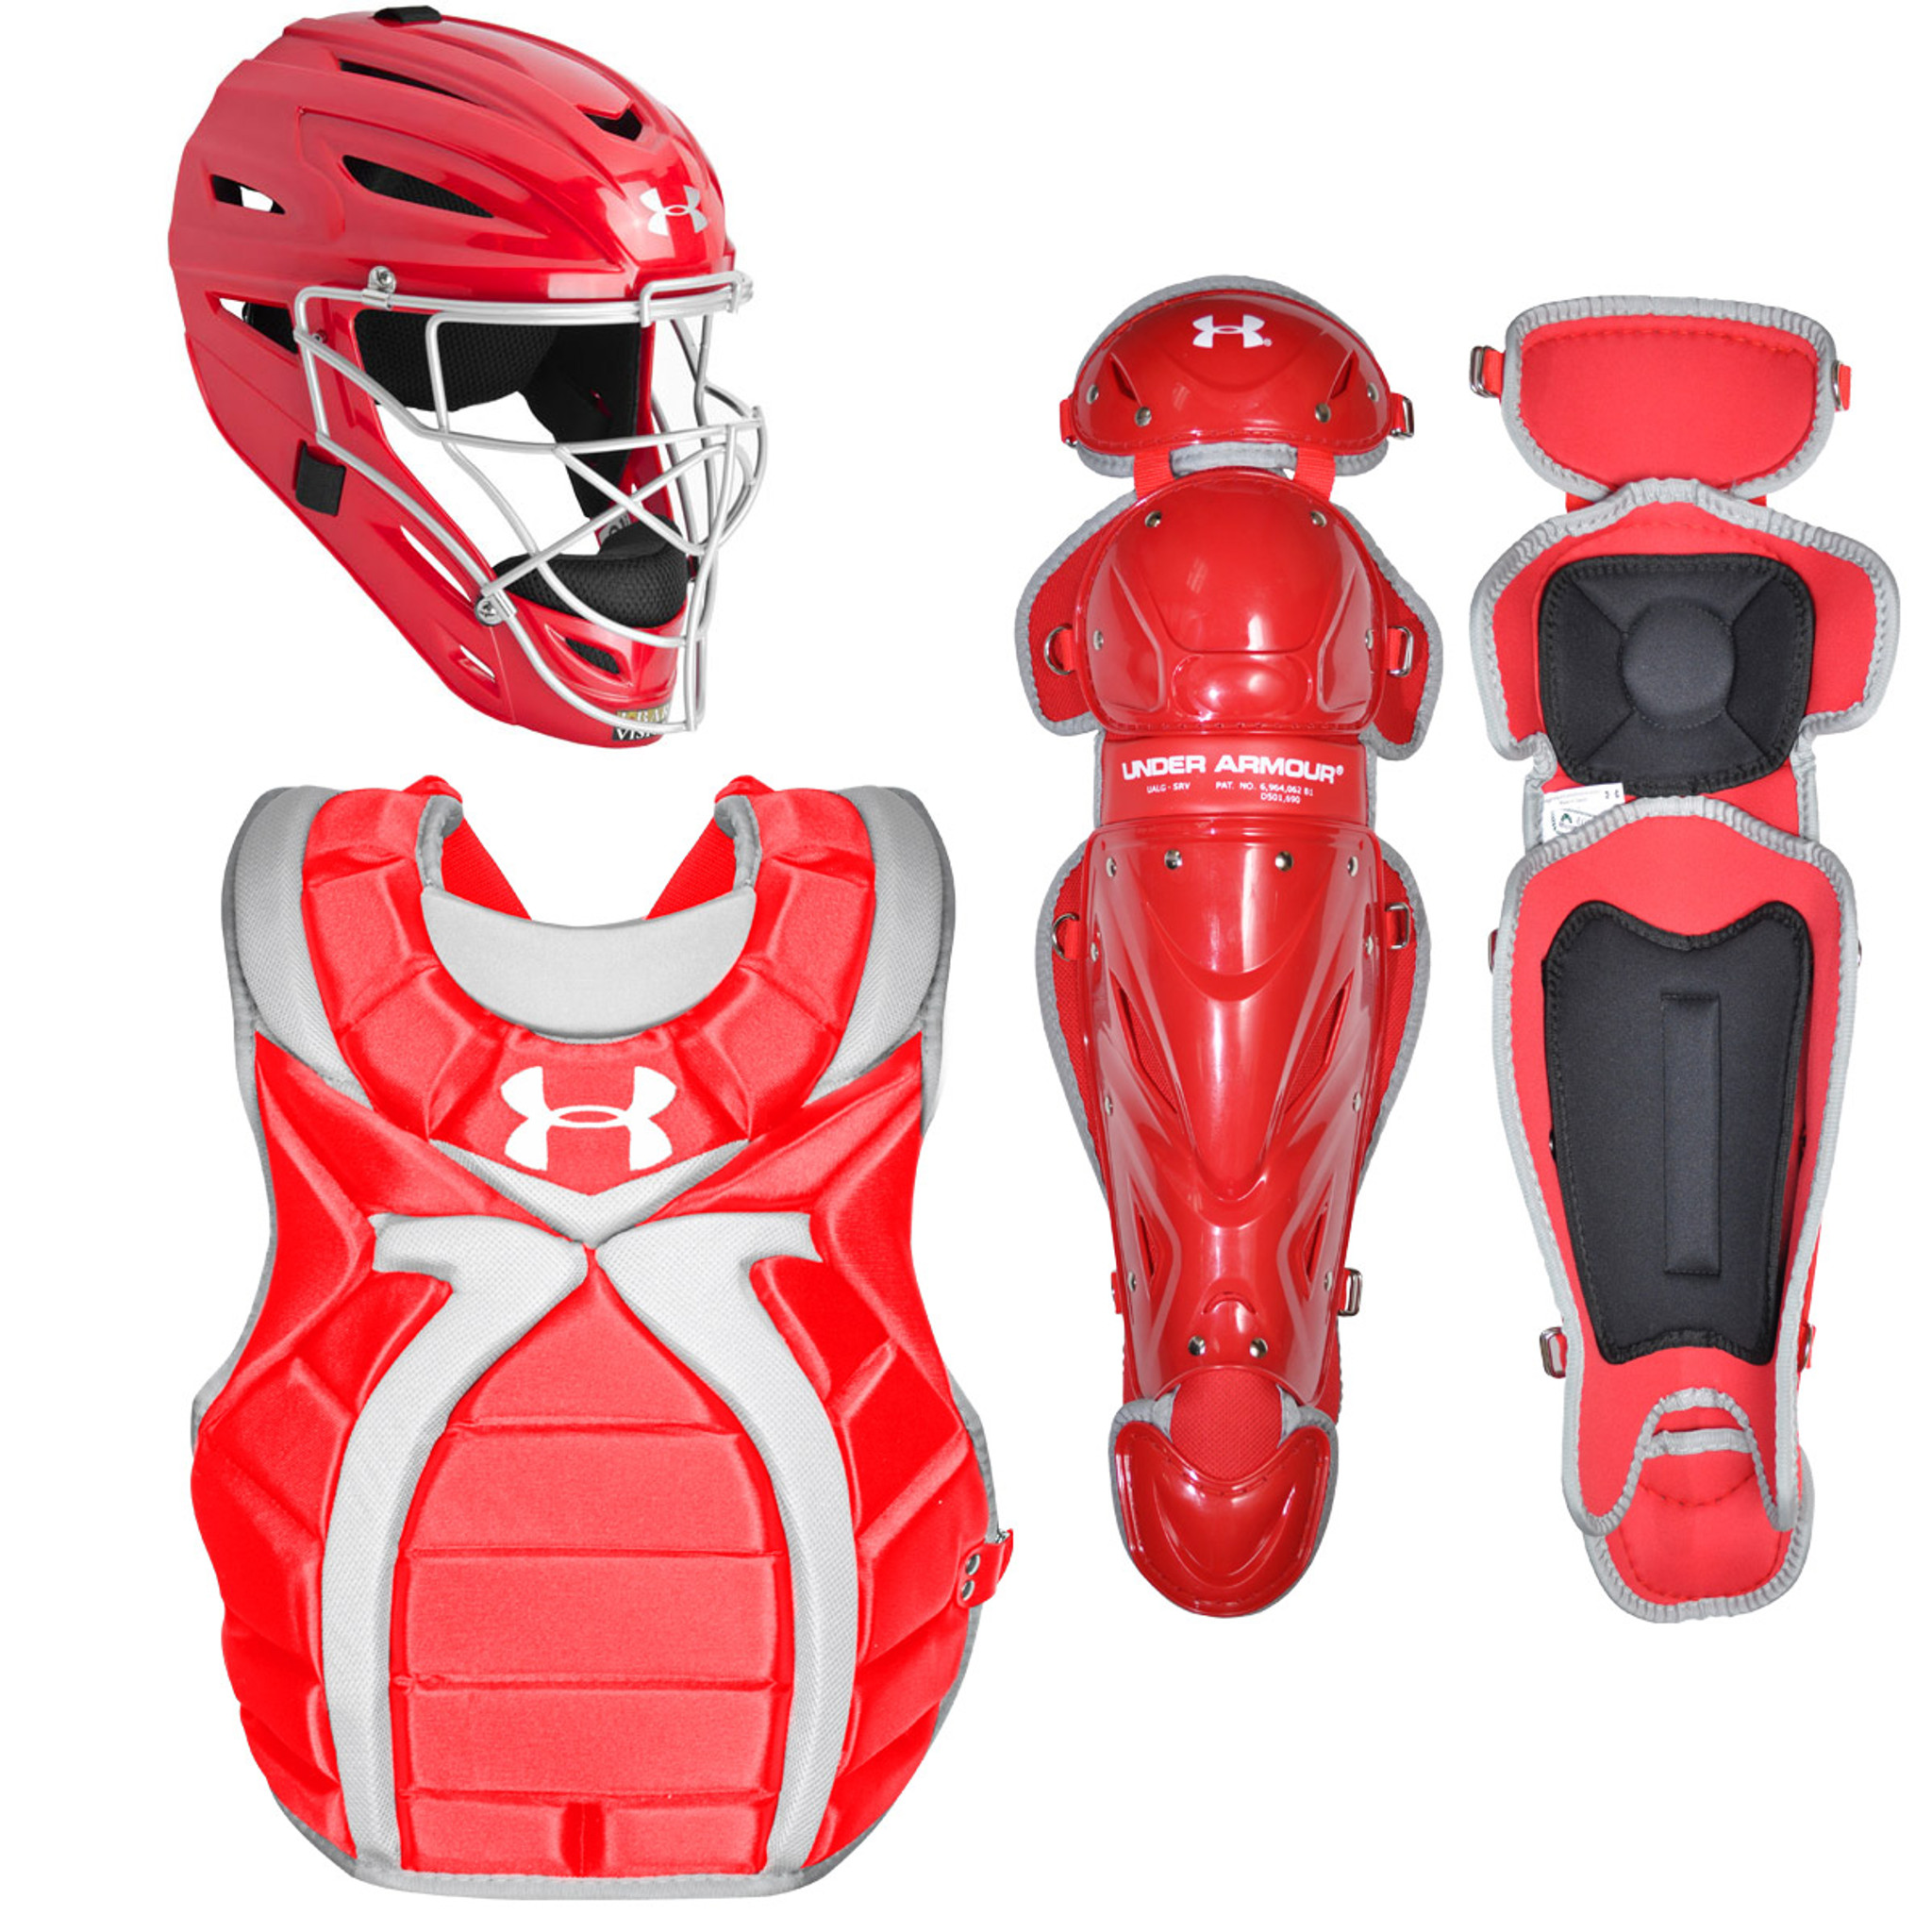 Under Armour Youth Girl/'s 9-12 Fastpitch Catcher/'s Gear Set Navy